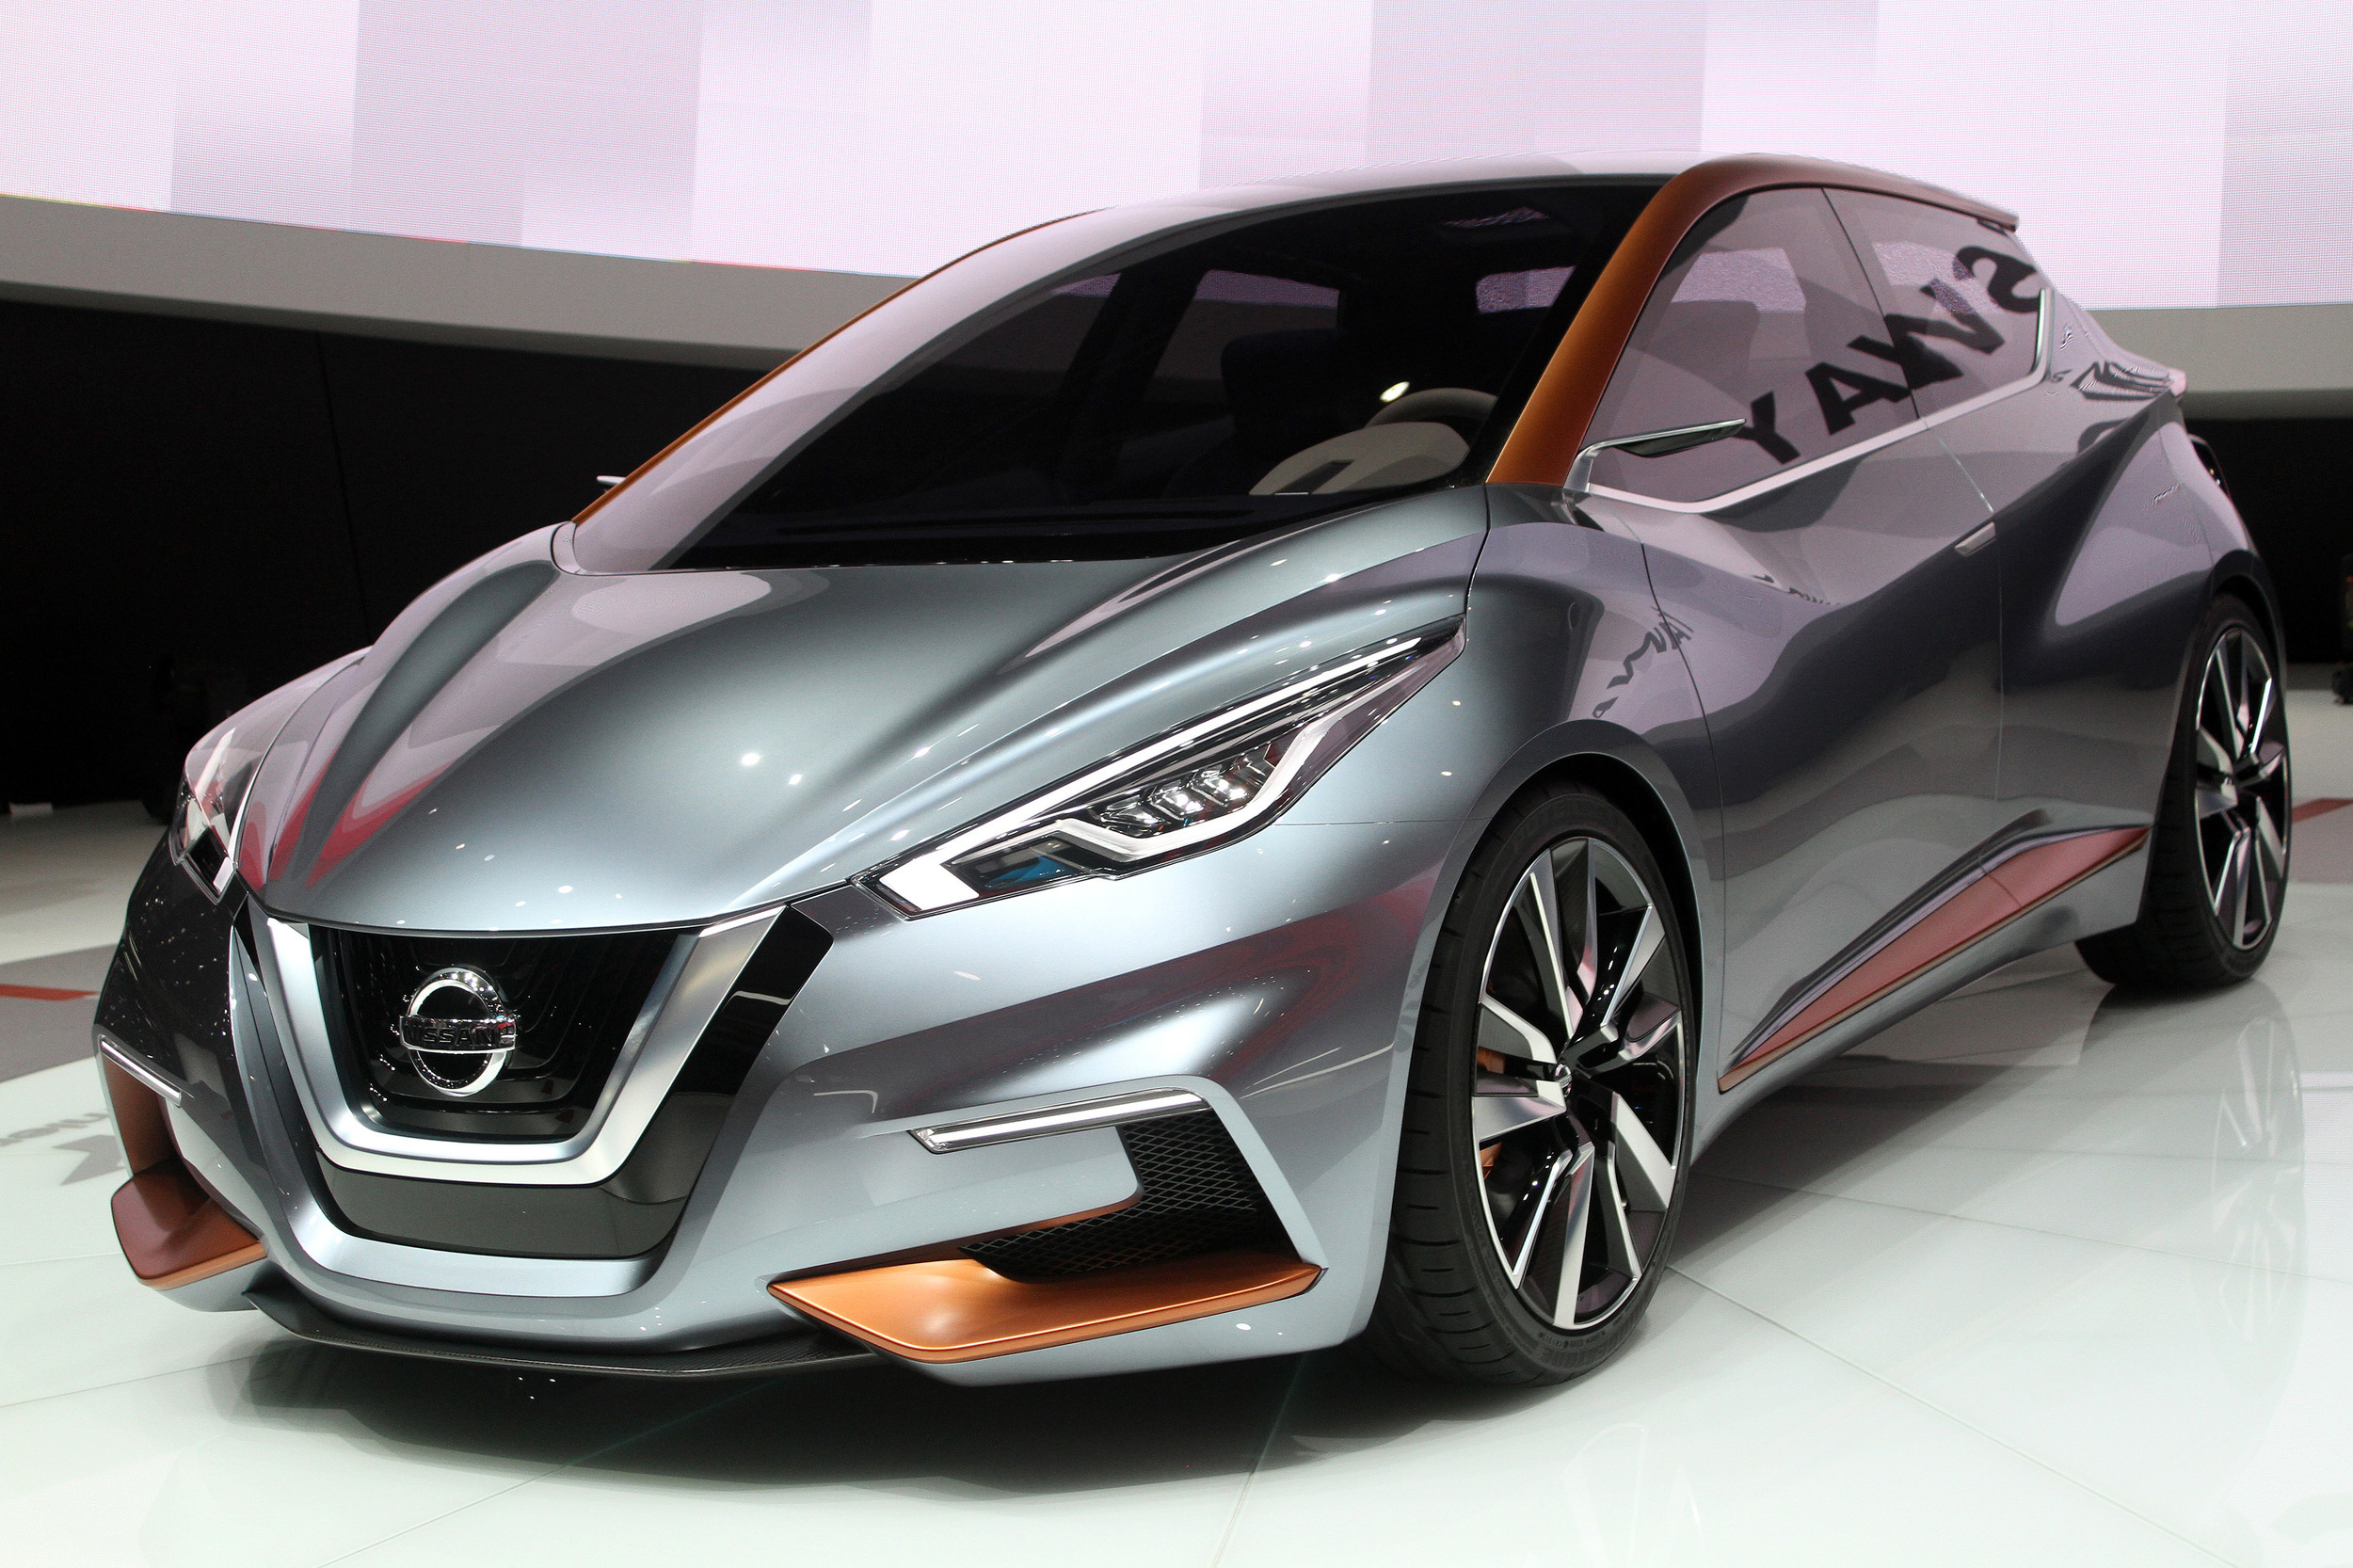 nissan-sway-concept-01-1-1